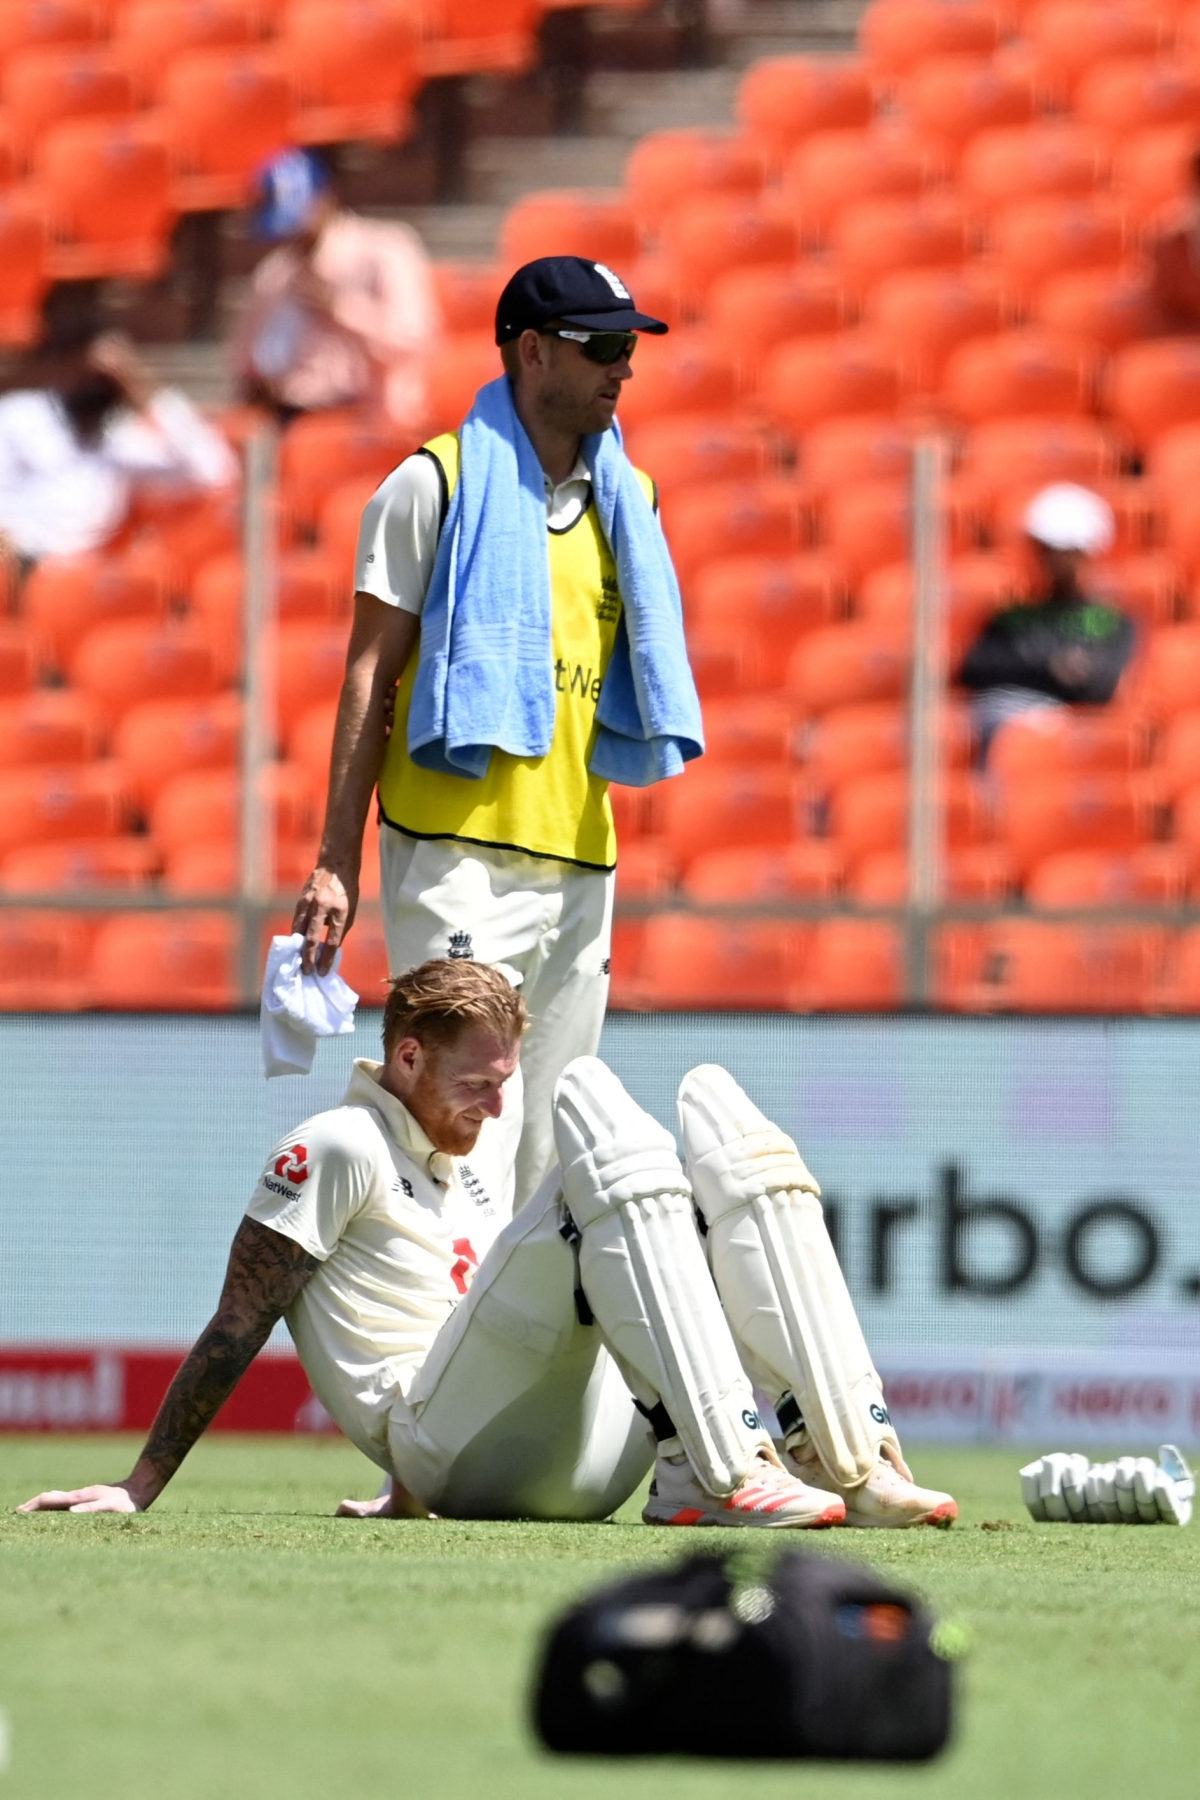 India vs England Test Series: Disappointment looms large on Stokes' face